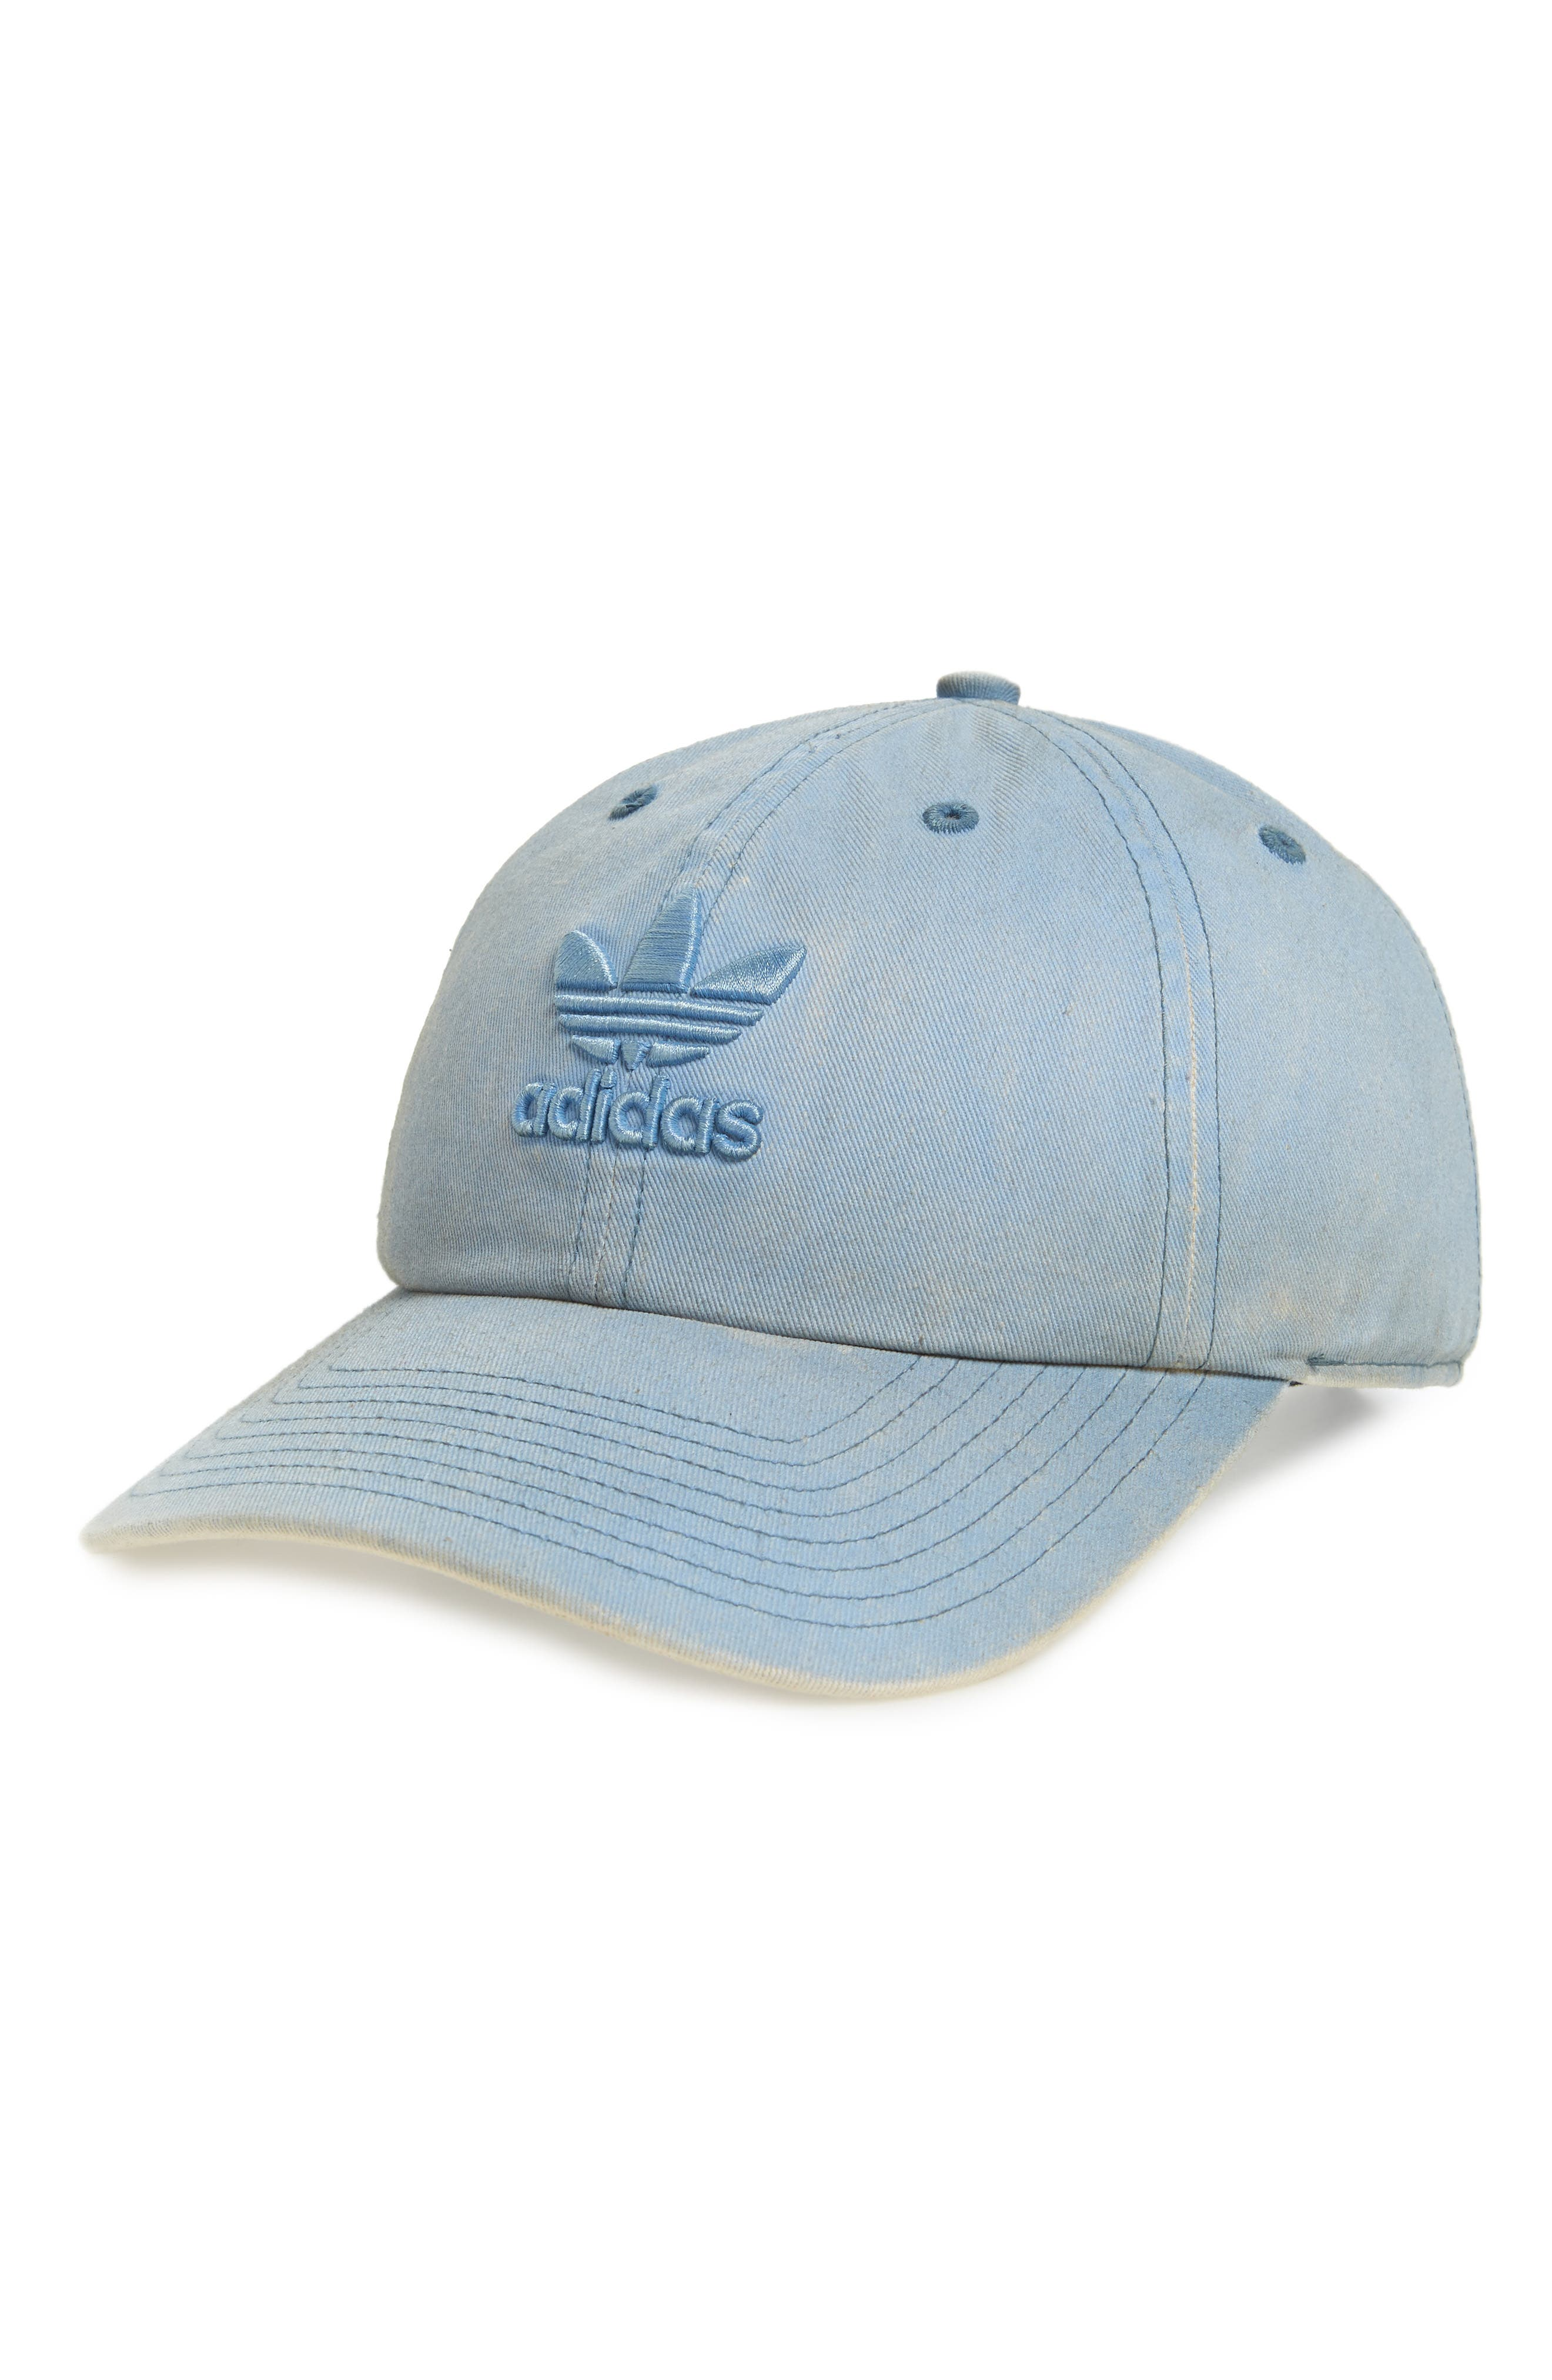 Originals Relaxed Overdyed Baseball Cap, Main, color, TACTILE BLUE